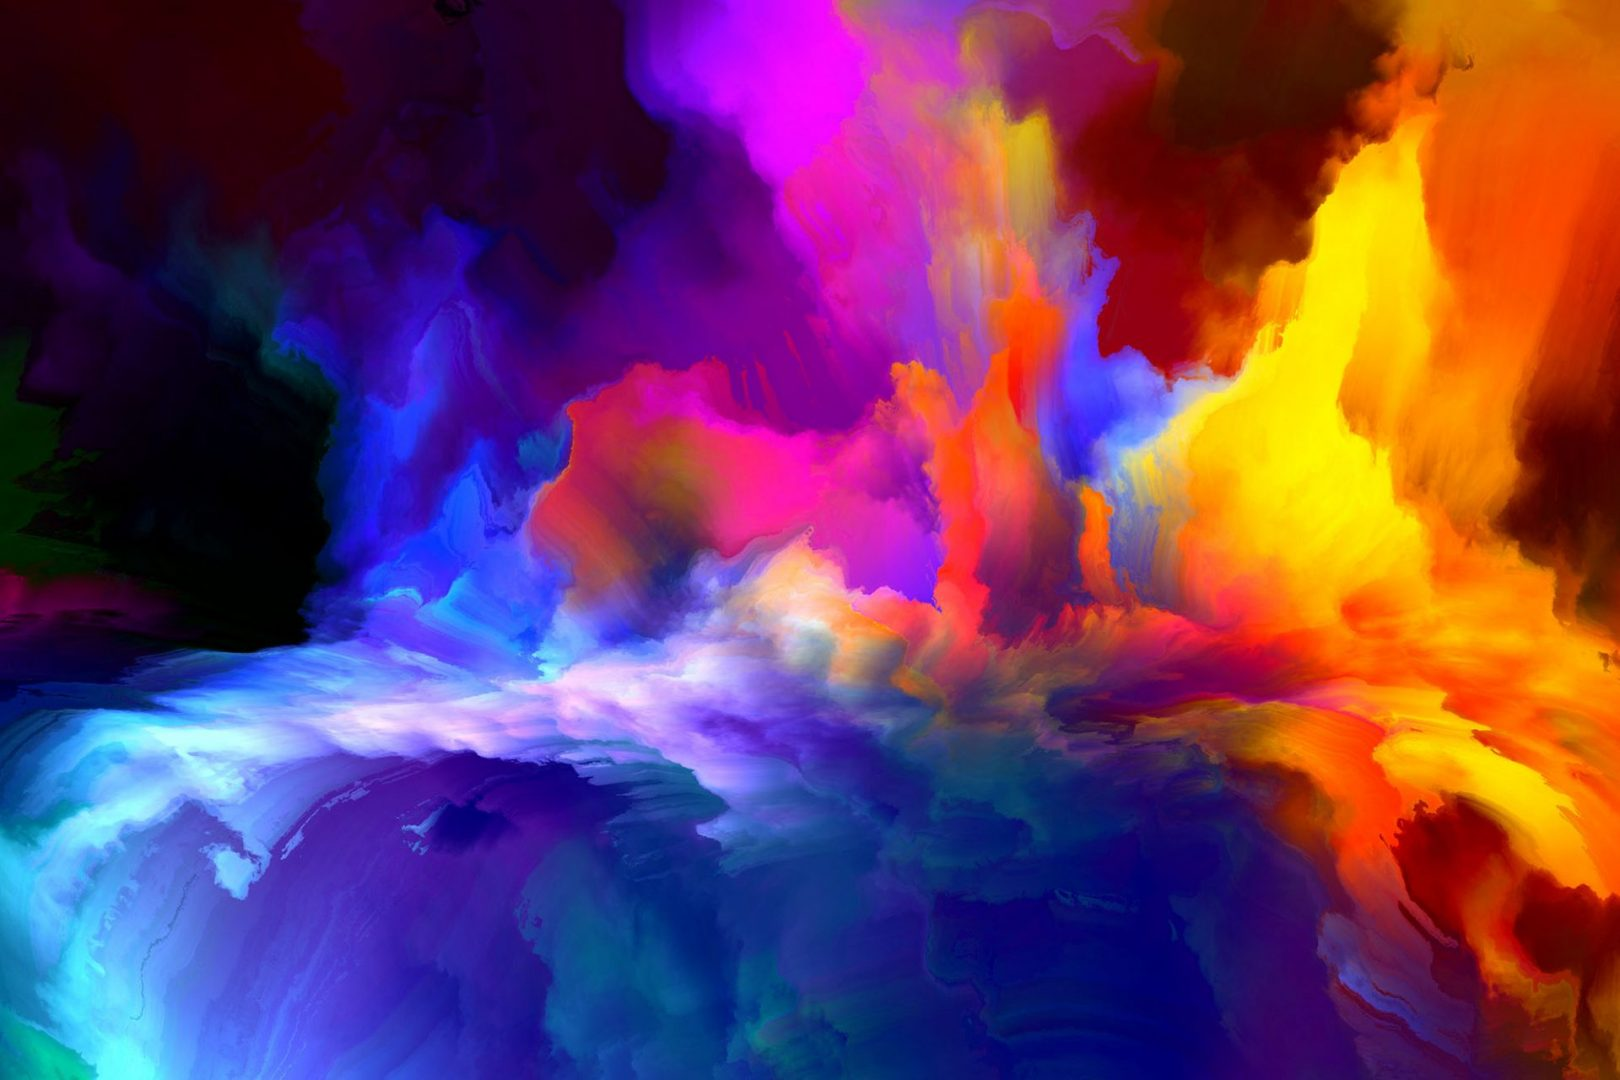 Color in motion, metaphor on the subject of design, creativity and imagination